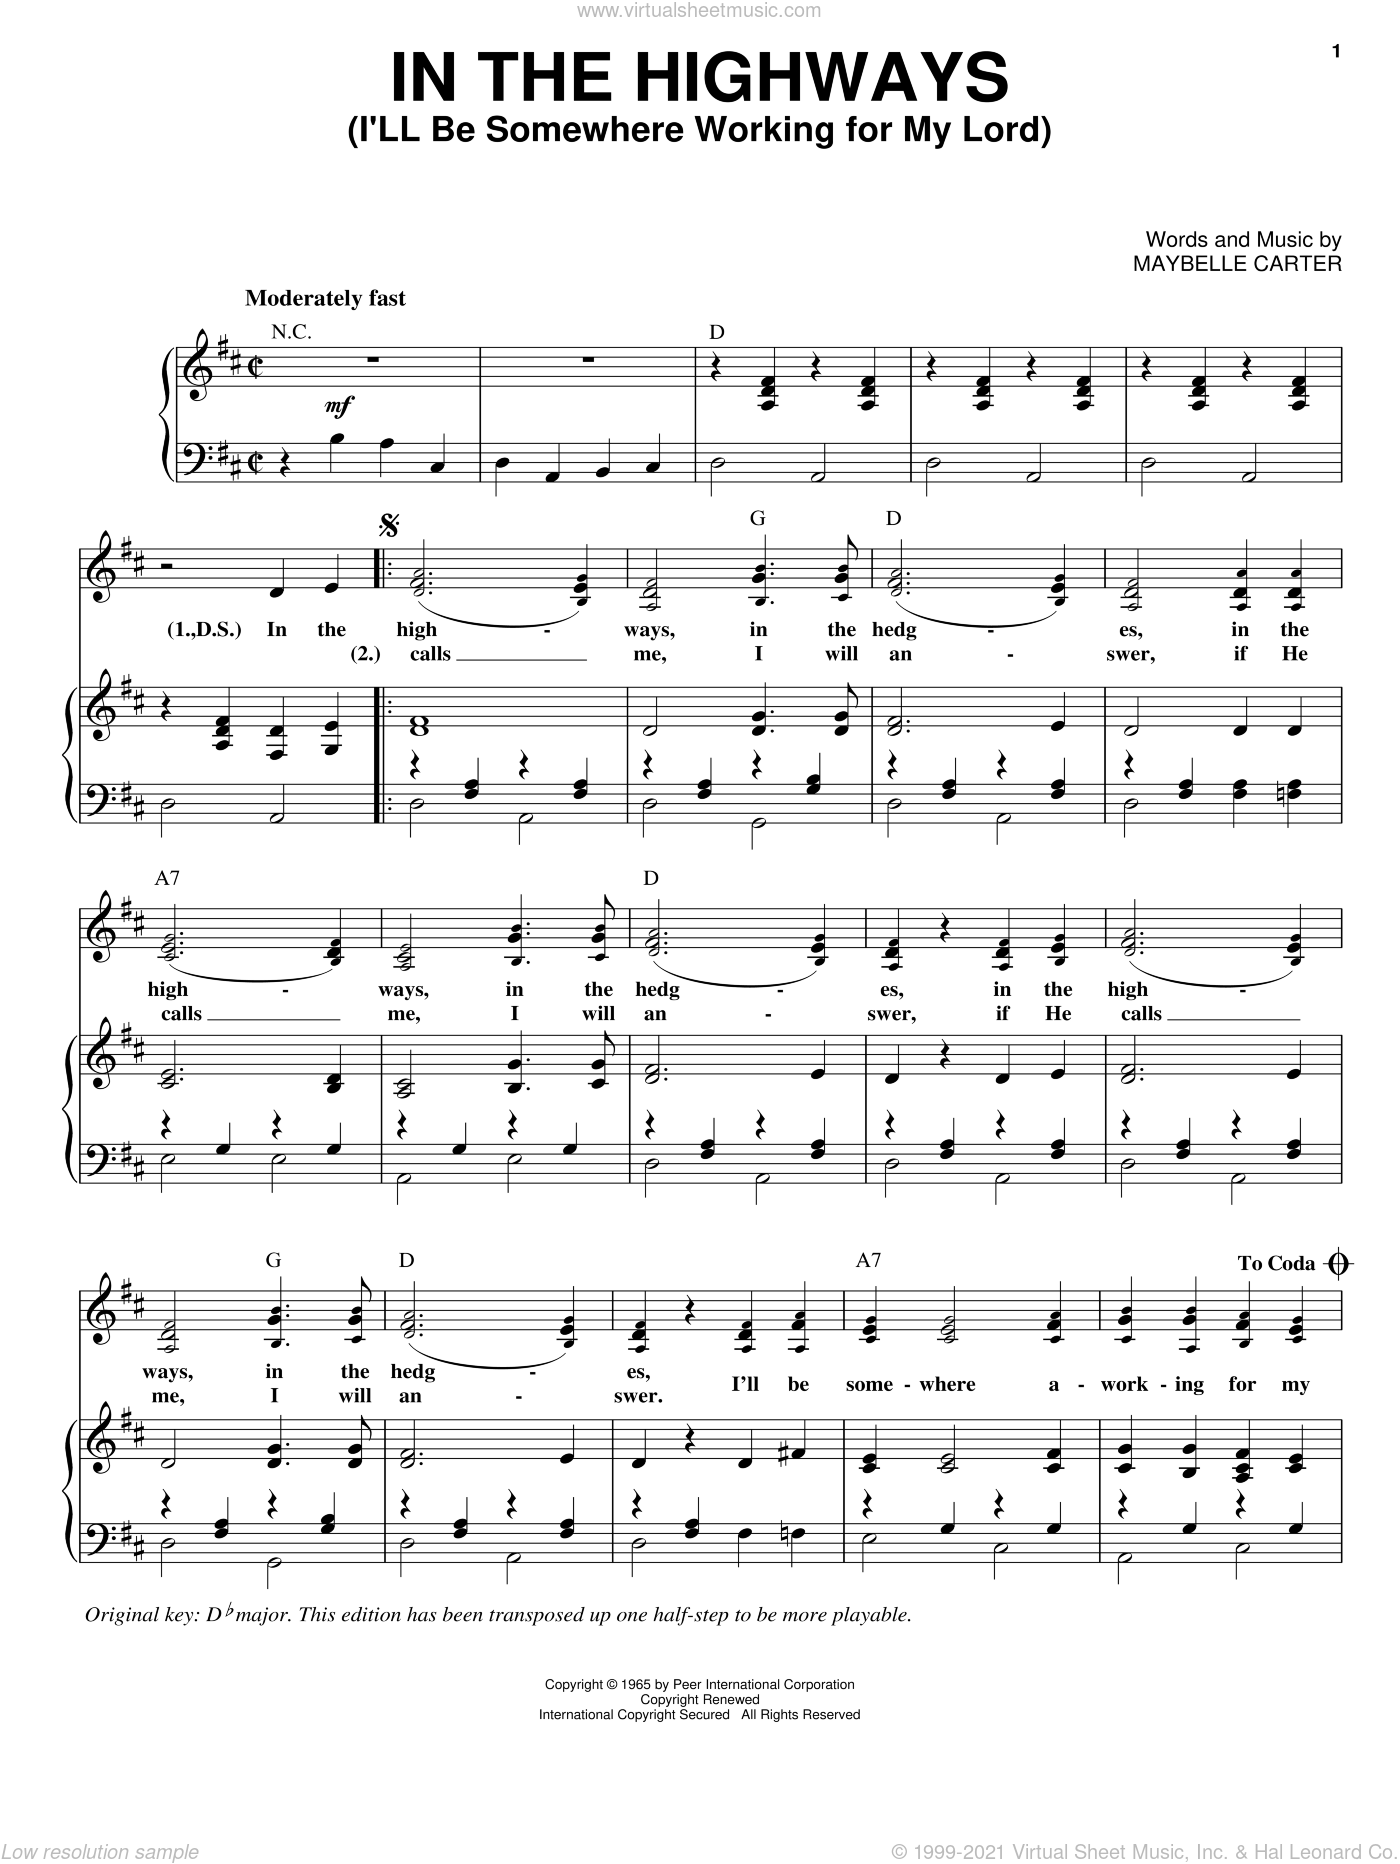 In The Highways (I'll Be Somewhere Working For My Lord) sheet music for voice and piano by Maybelle Carter